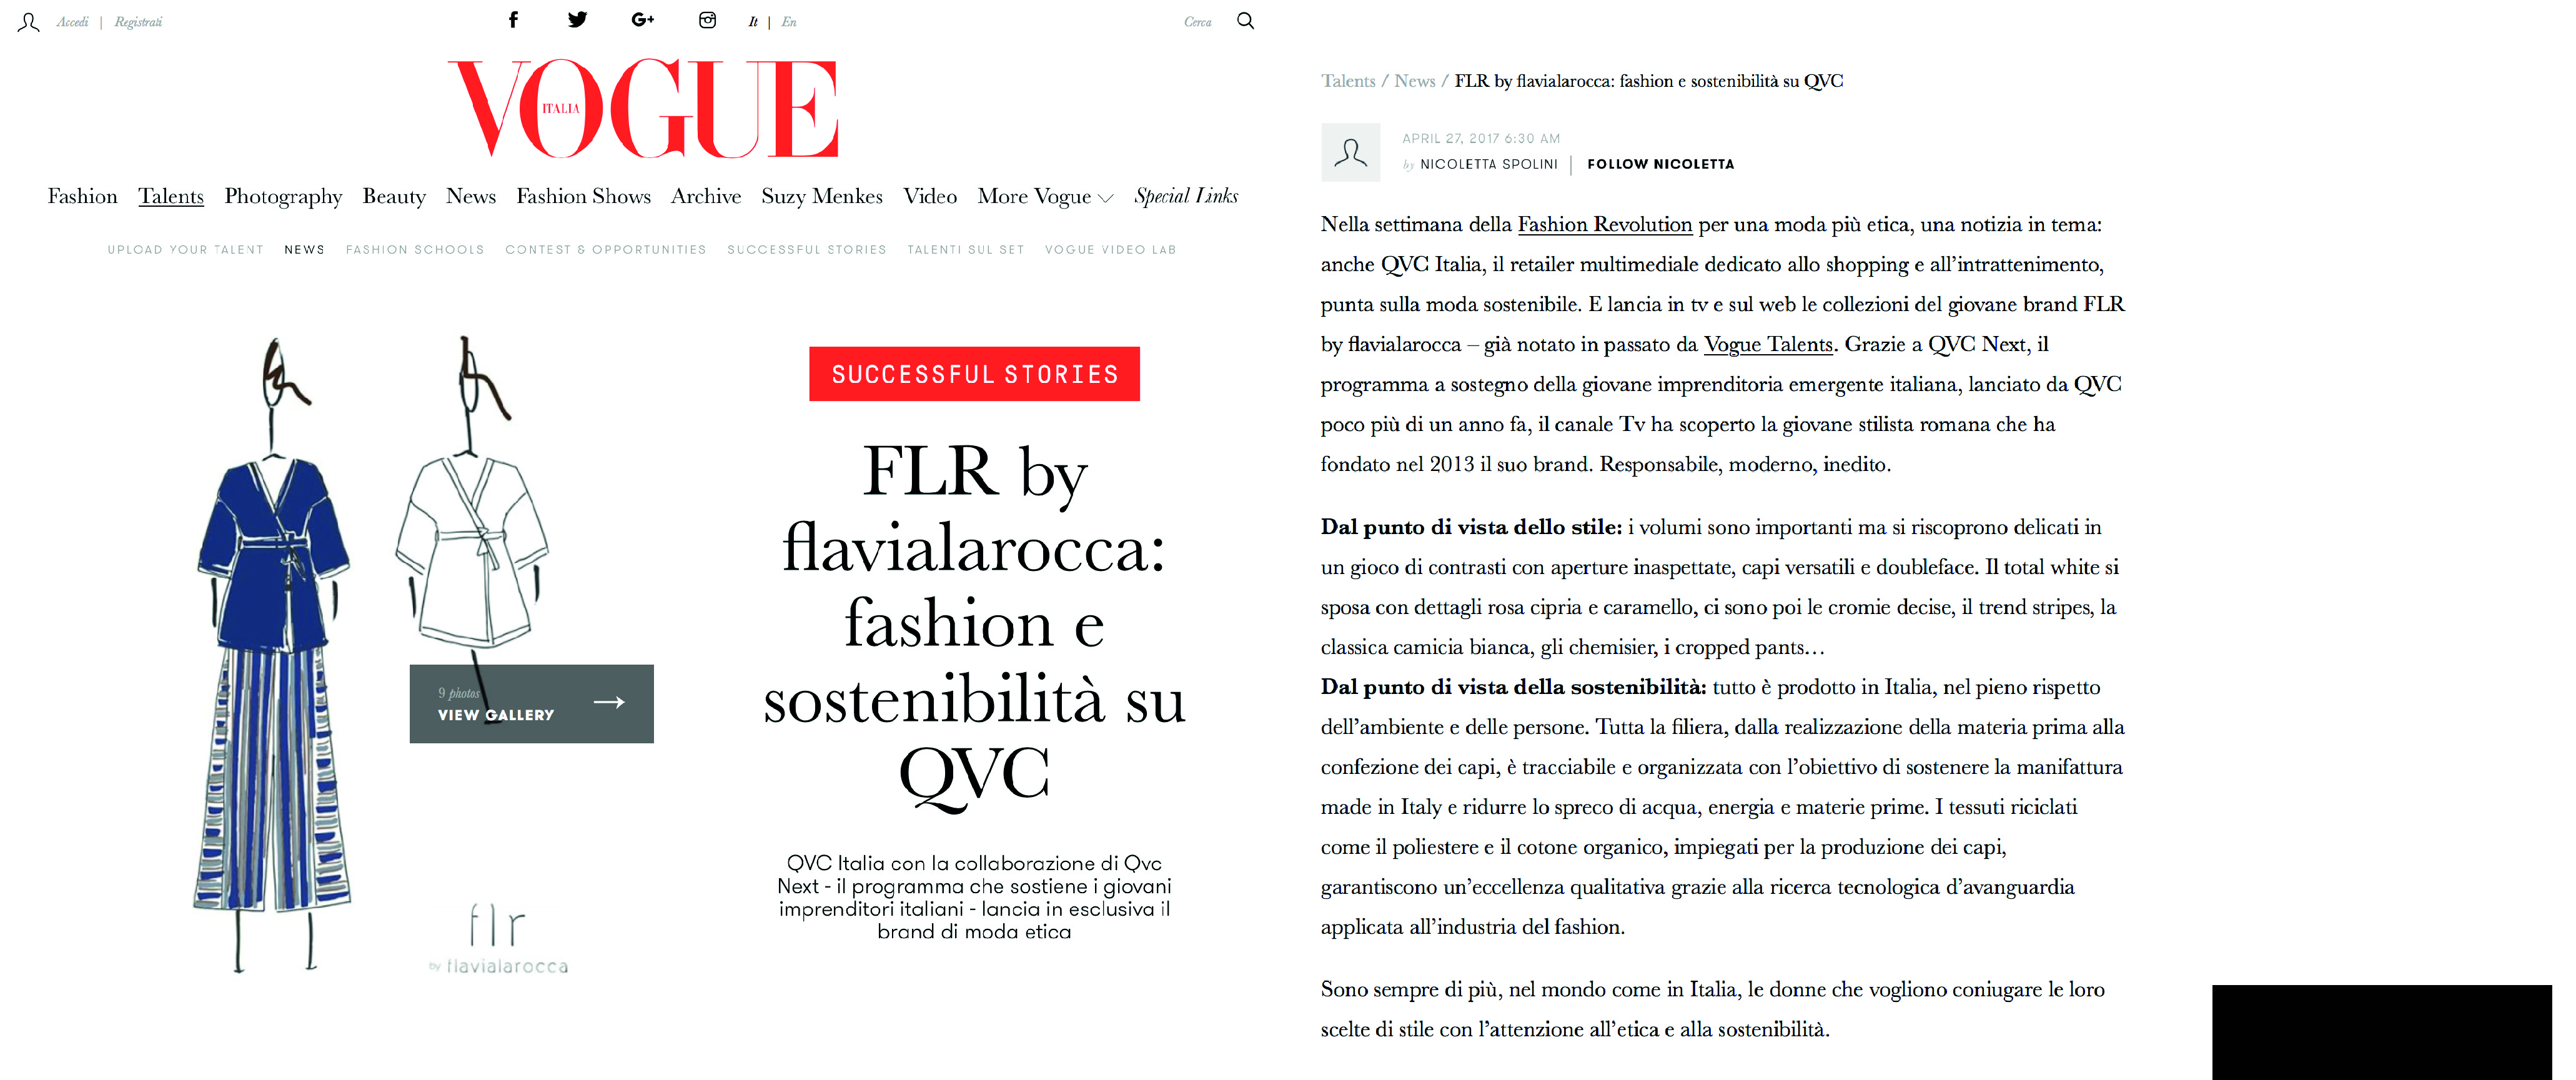 FLR by flavialarocca on vogue.it